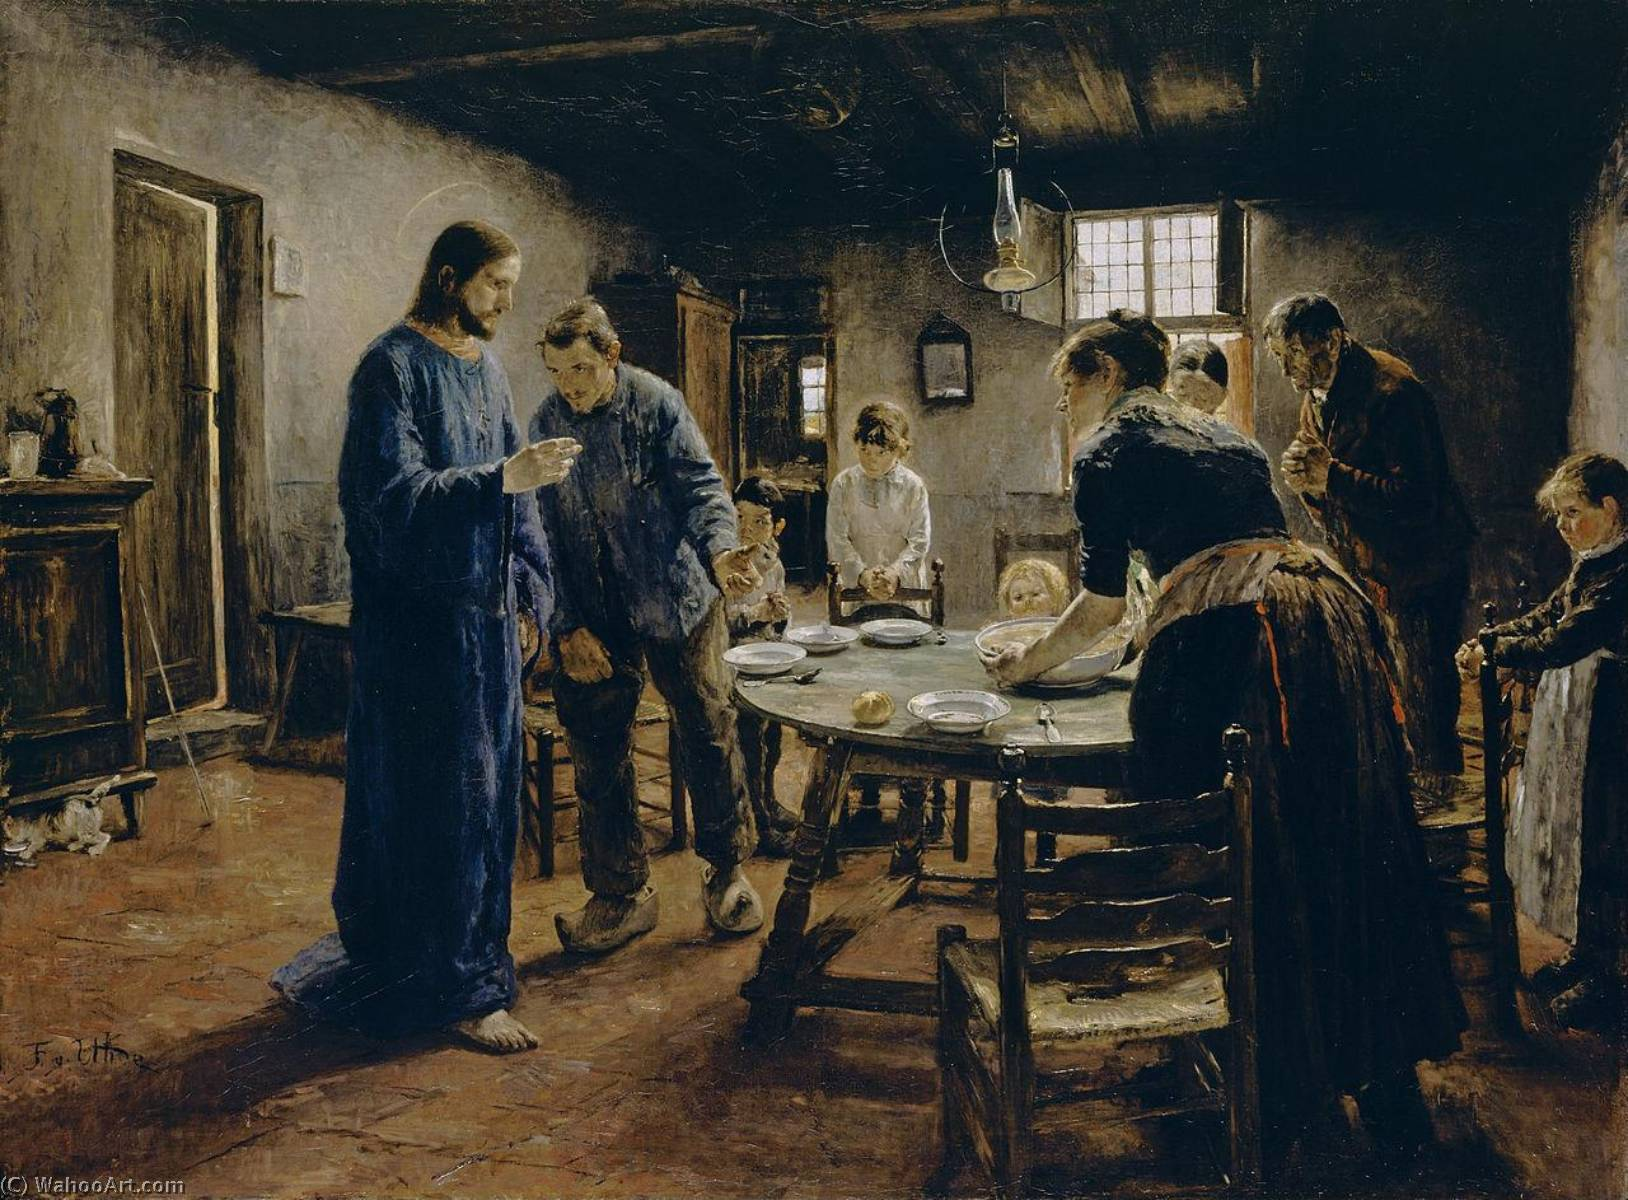 The Mealtime Prayer, Oil On Canvas by Fritz Von Uhde (1848-1911)